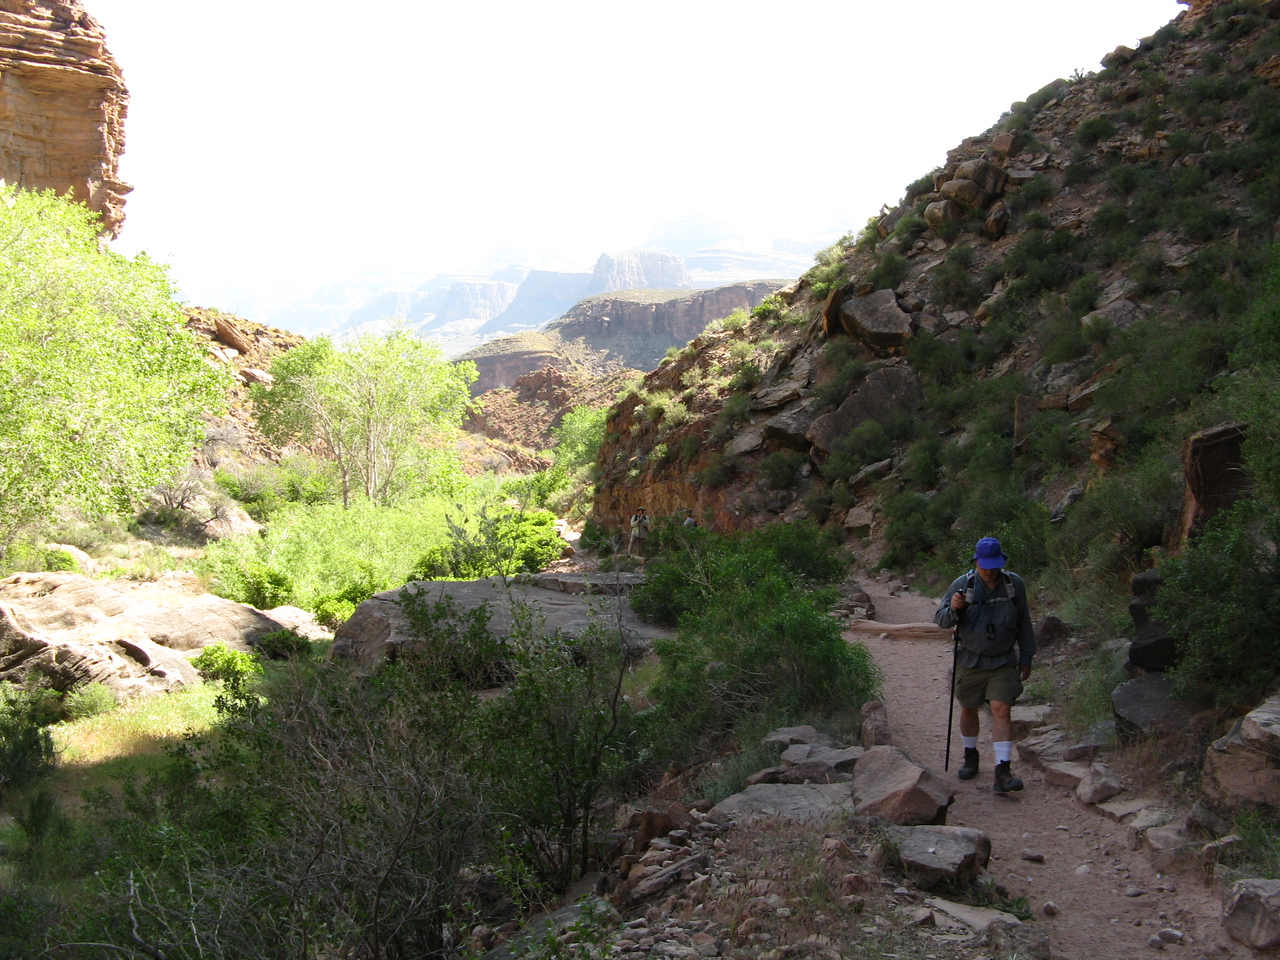 Wendell is hiking on the trail with Garden Creek on the left.  The canyon in the distance is overexposed in this frame.